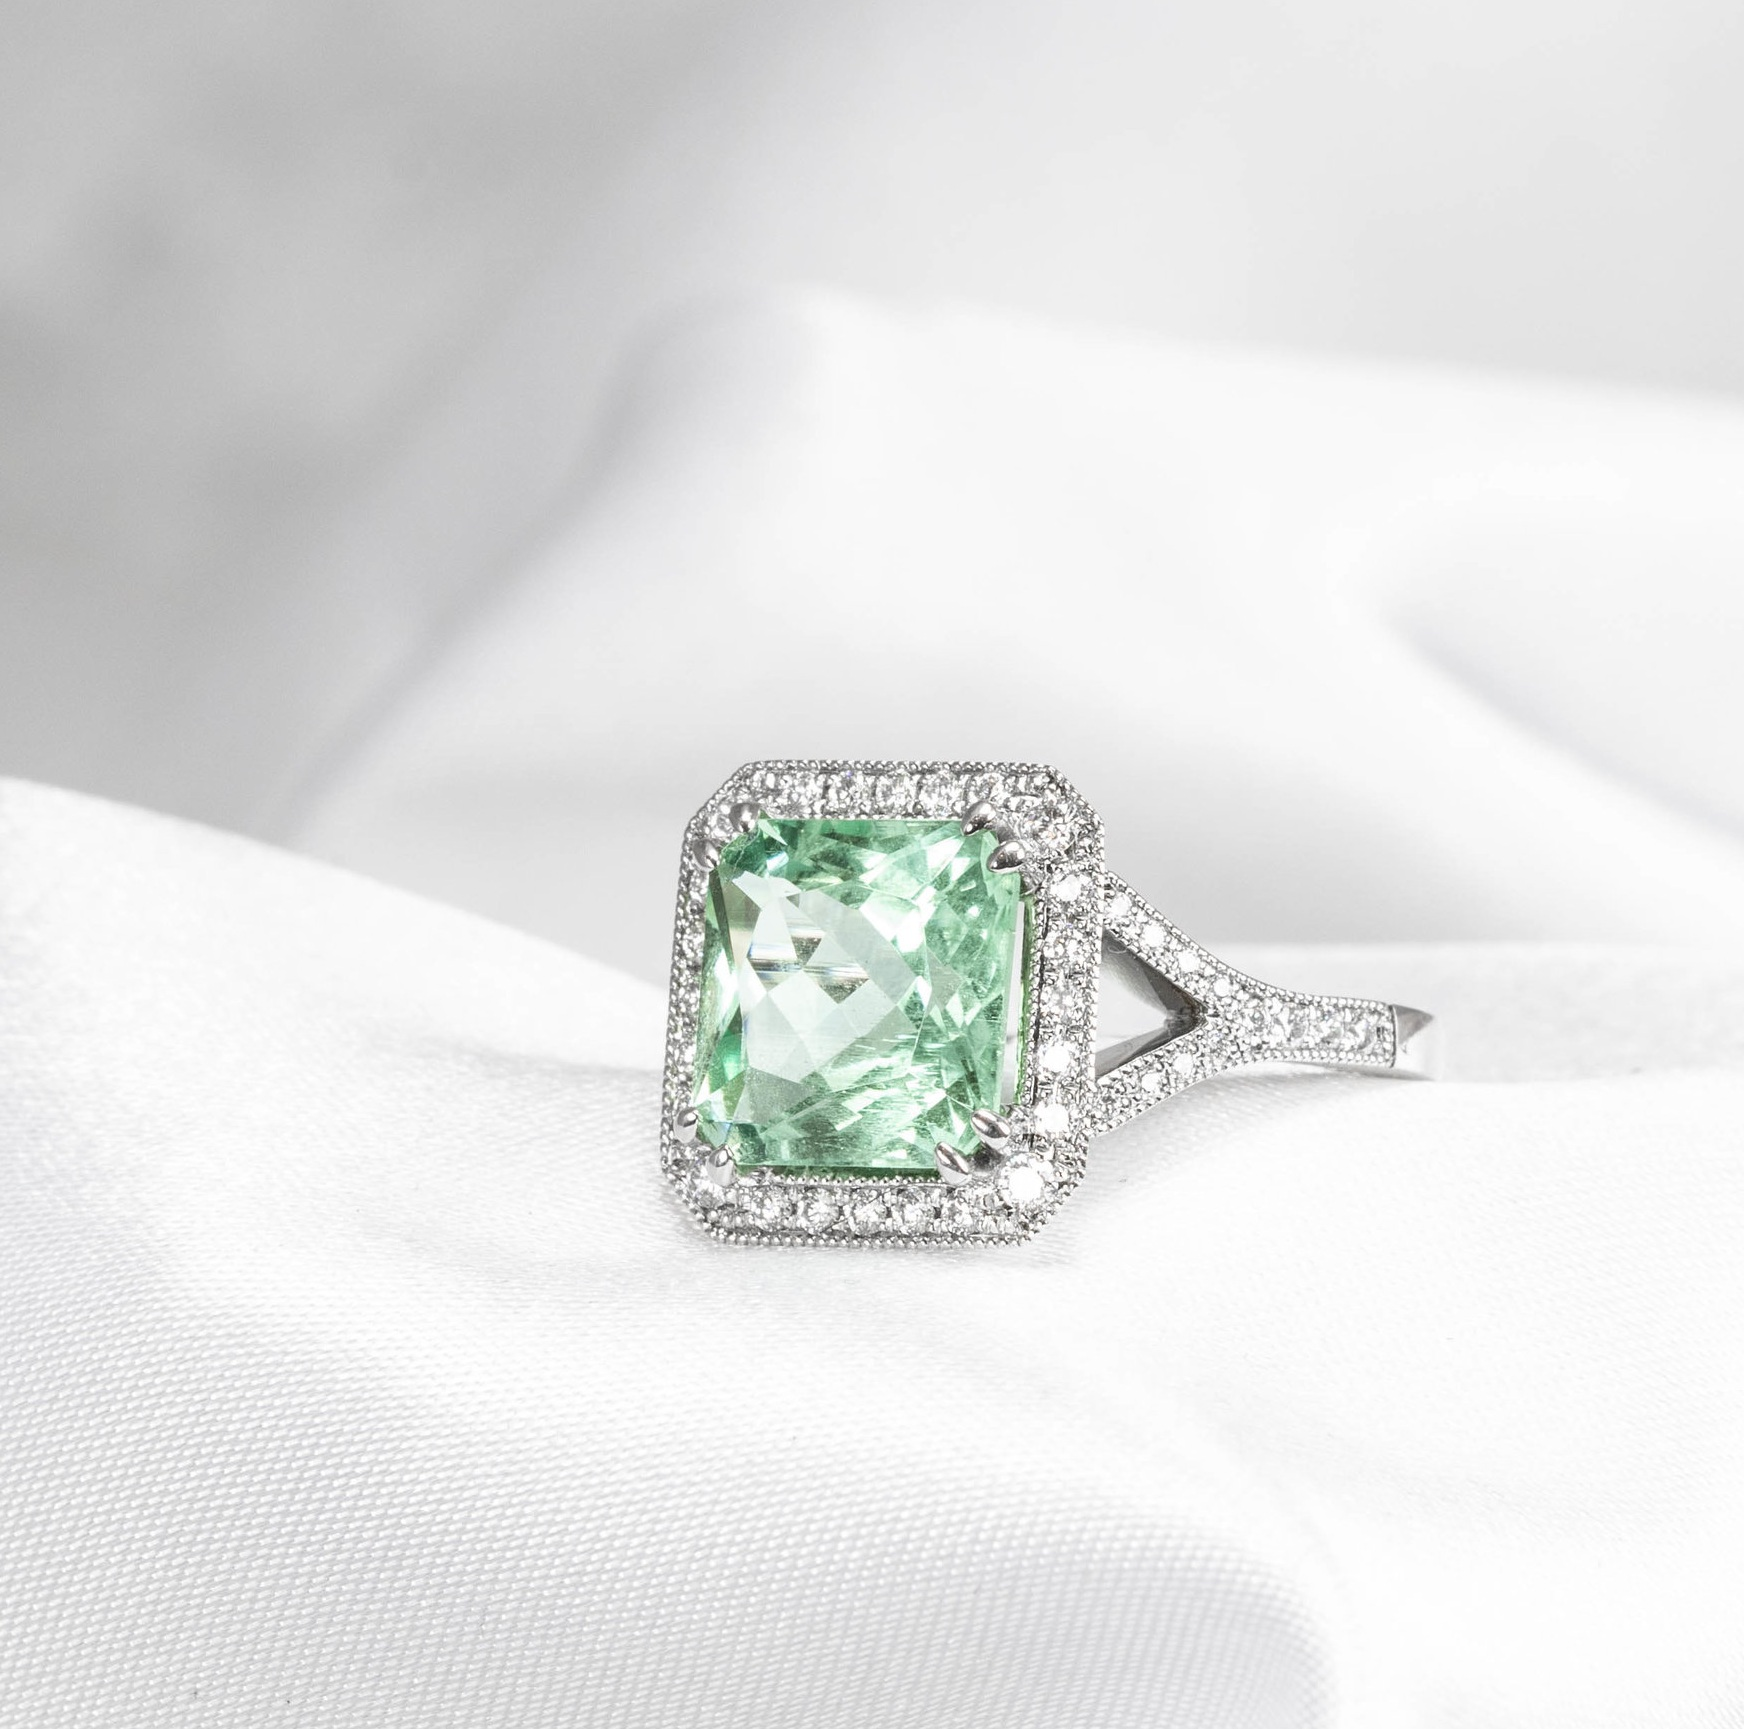 Mint aquamarine and diamond octagonal cluster ring. Made in Chichester, England.